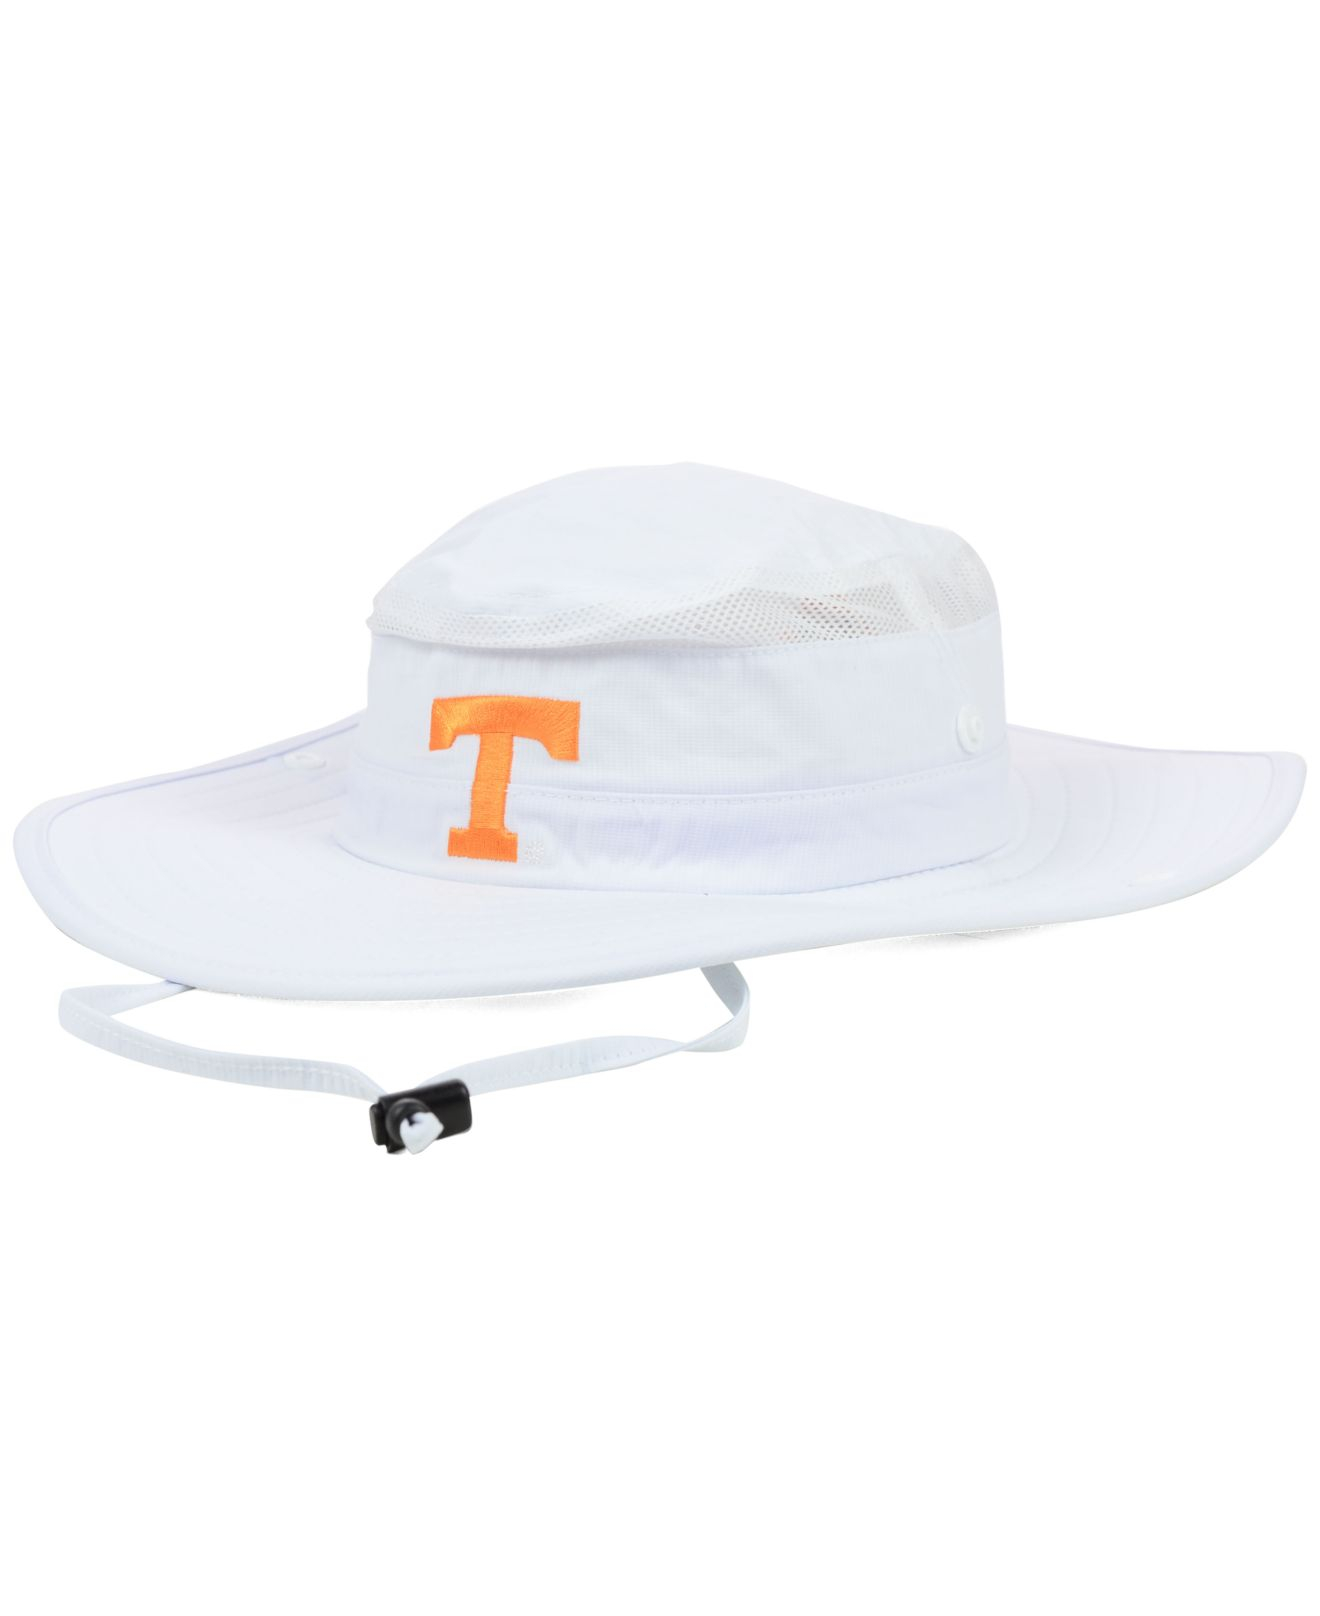 best website 39cfb e2568 ... germany lyst adidas tennessee volunteers campus safari hat in white for  men bb7e2 698c6